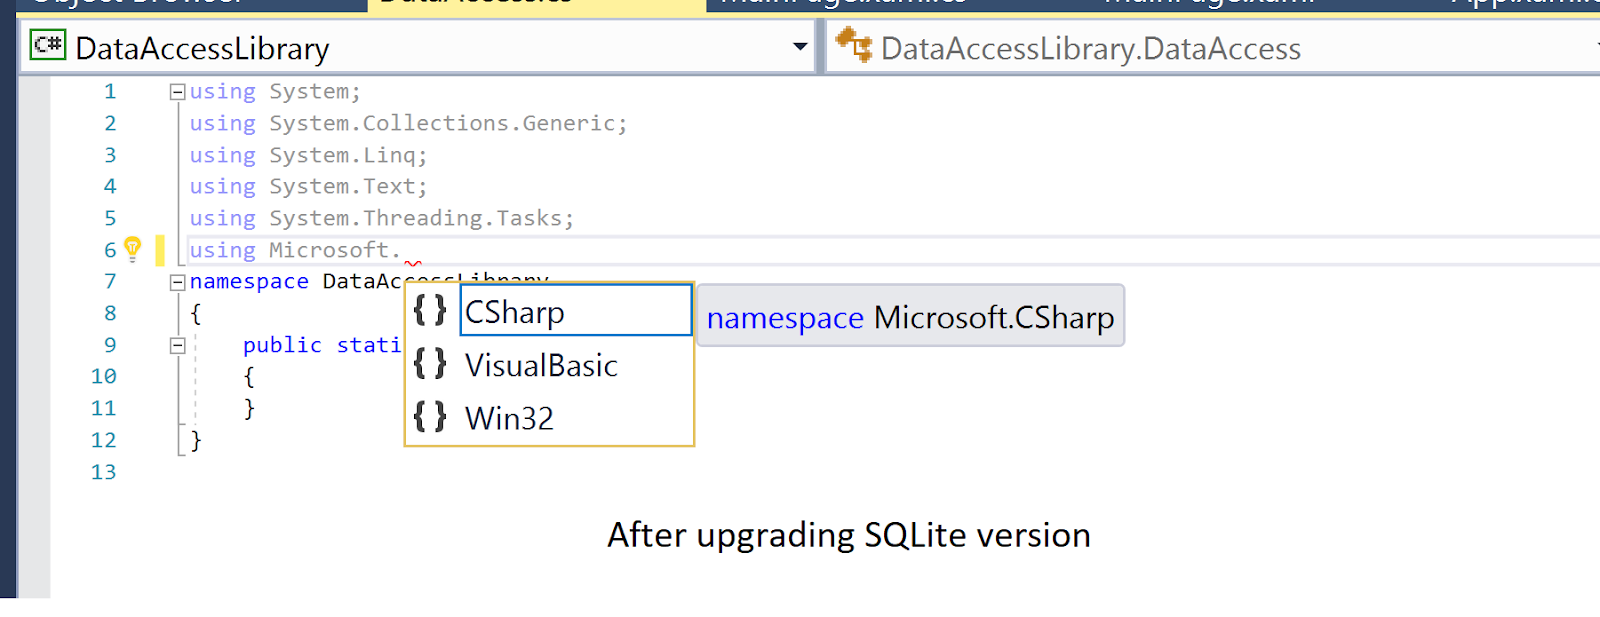 On Connecting to SQLite from a UWP app - Part 1 | XML Magazine